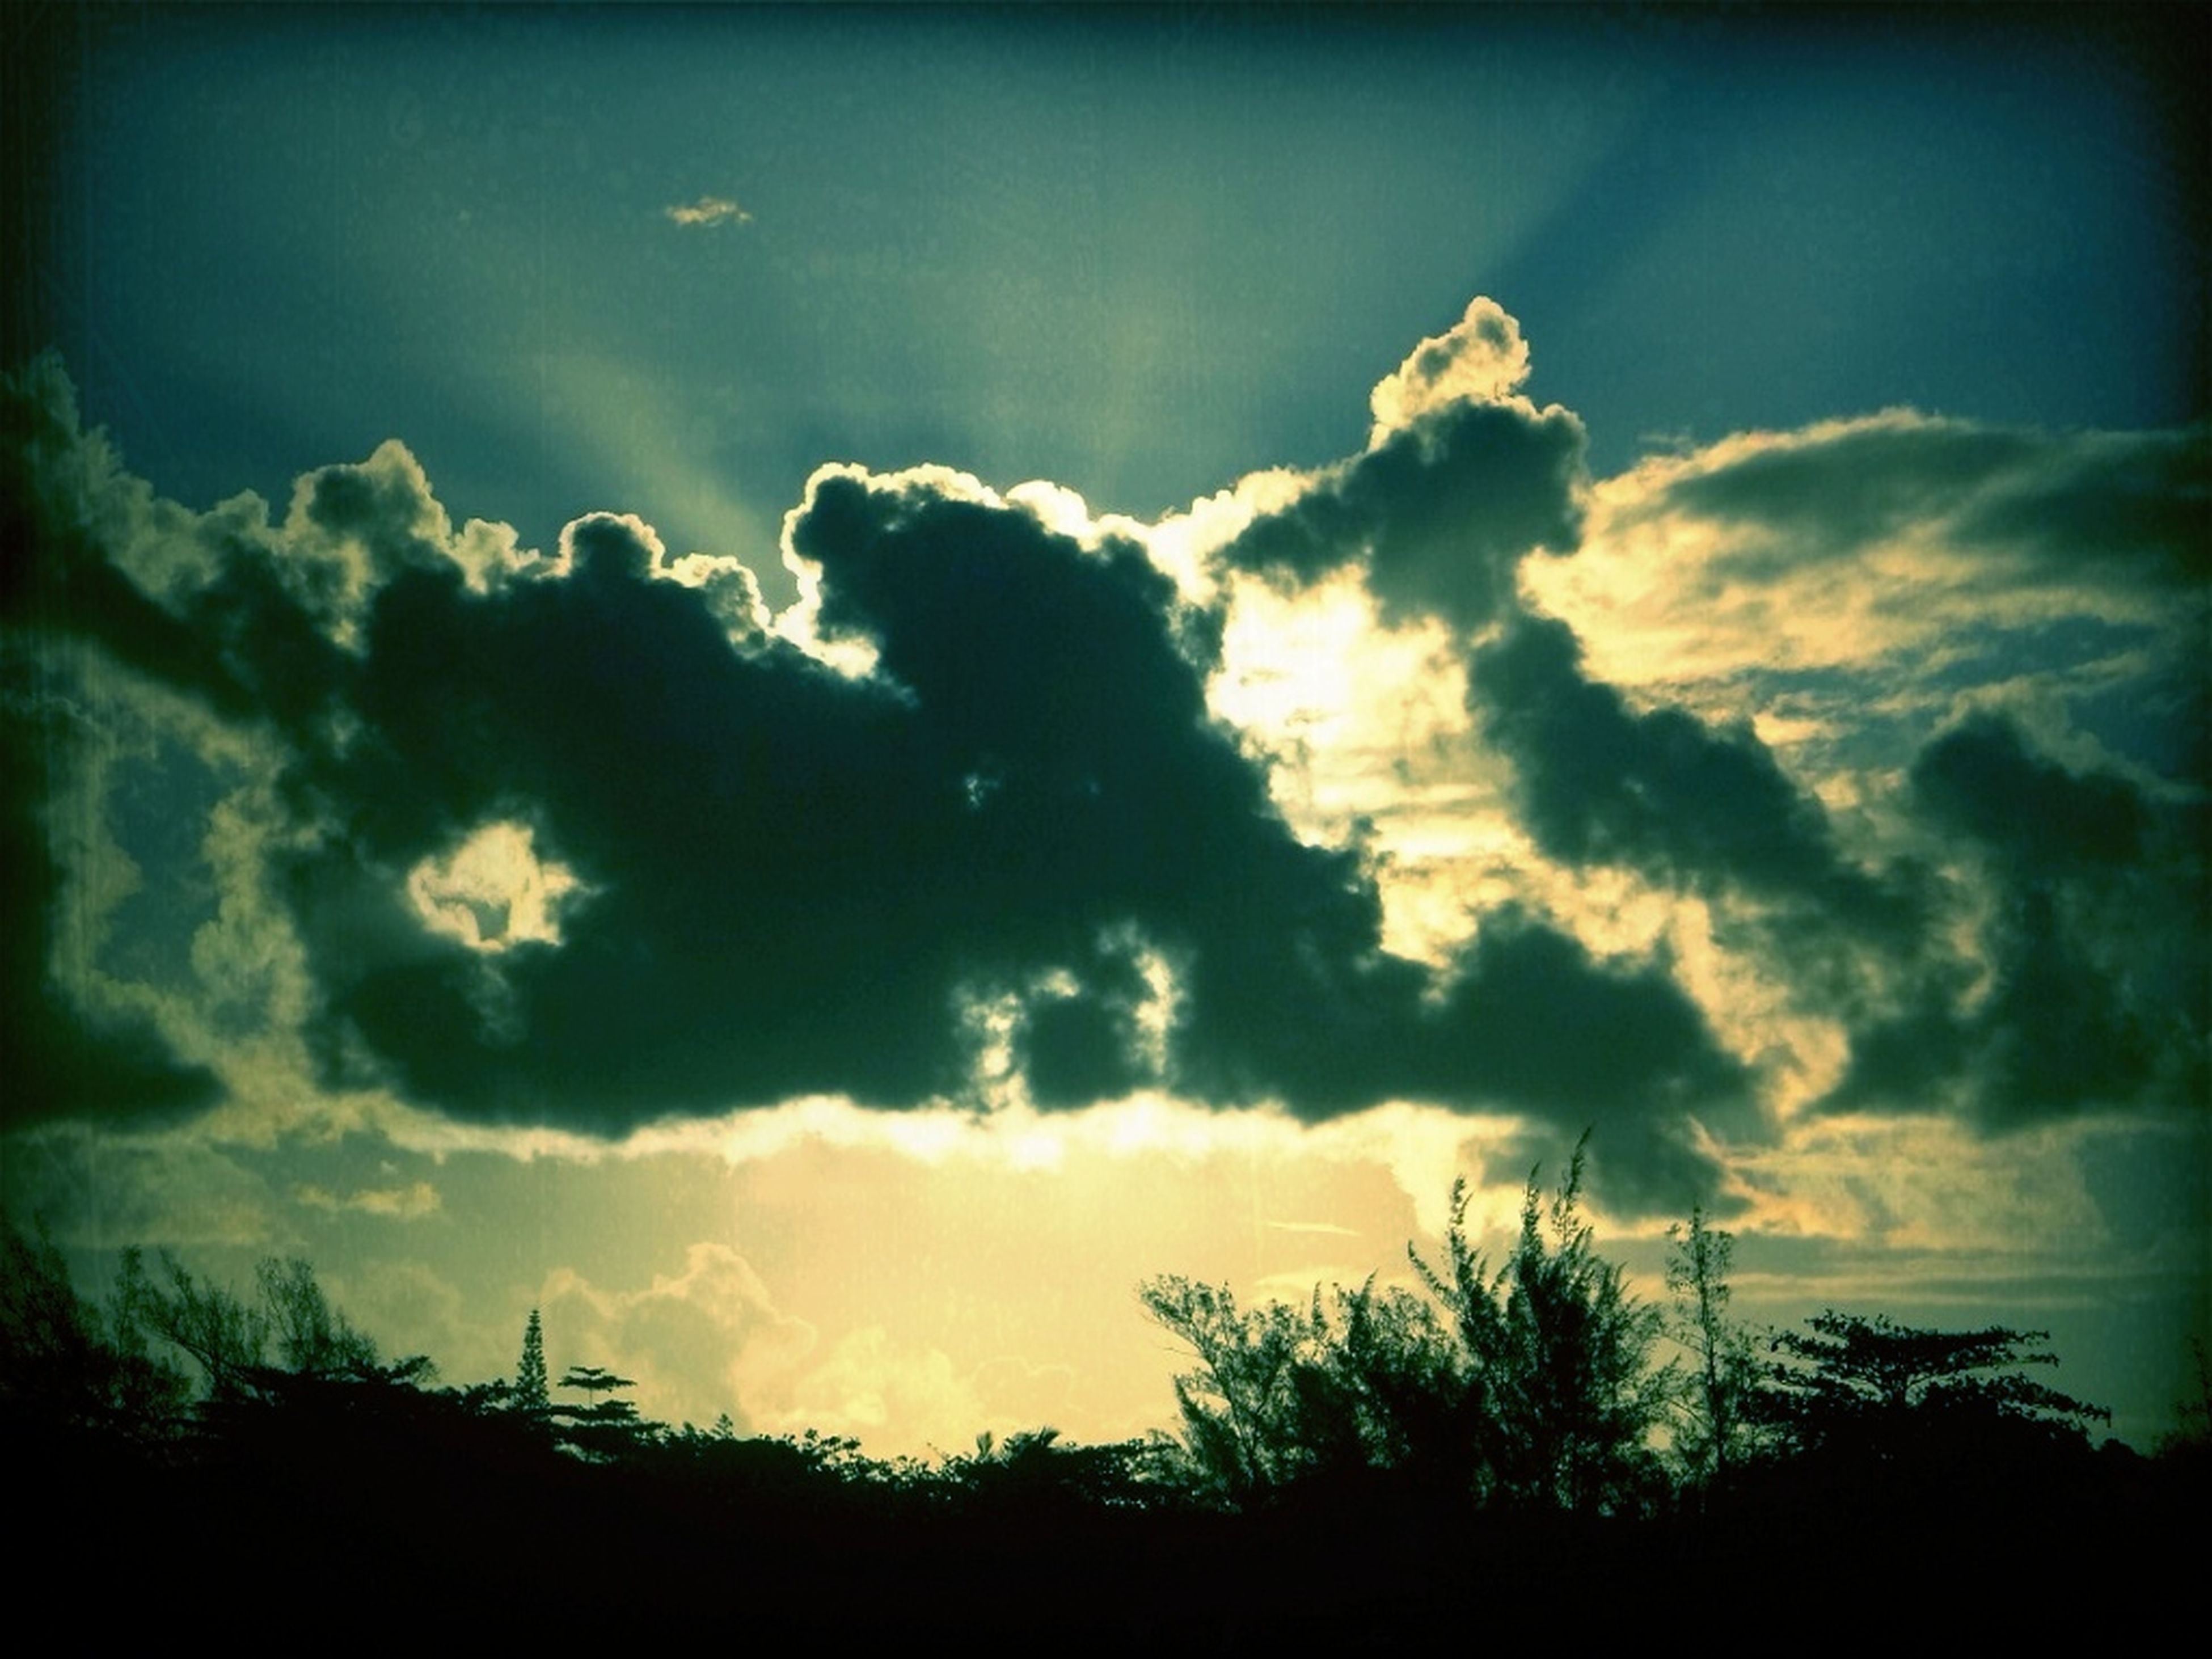 sky, cloud - sky, beauty in nature, scenics, silhouette, tranquility, tranquil scene, cloudy, sunset, nature, cloud, low angle view, tree, idyllic, dramatic sky, cloudscape, outdoors, sunlight, sunbeam, weather